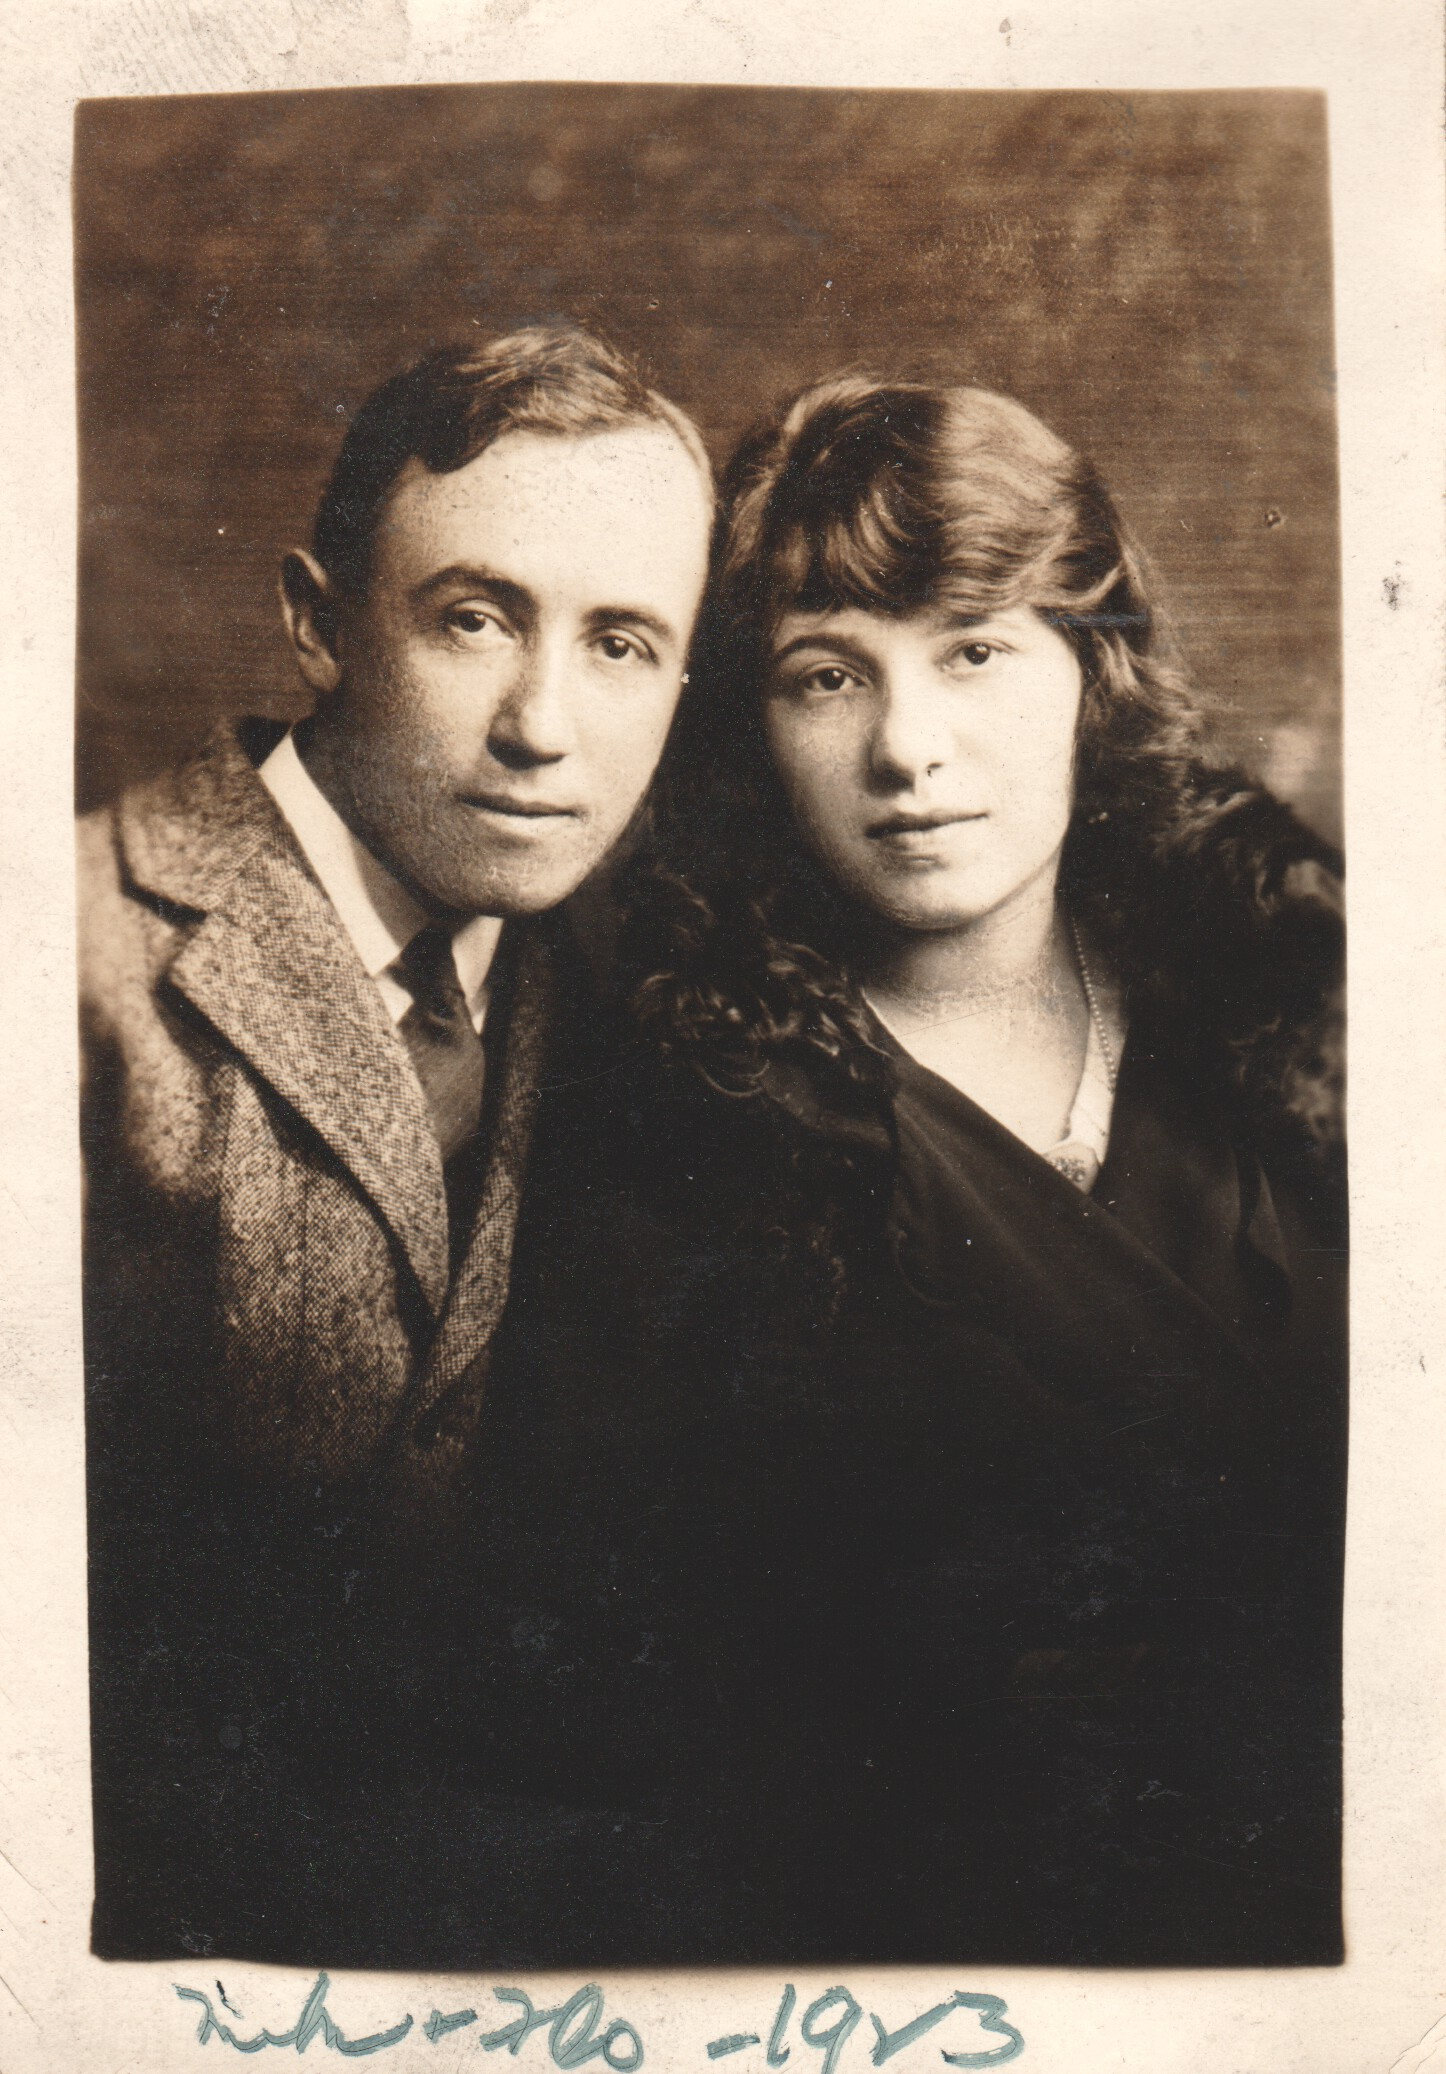 Oscar 'Mike' Mirantz and his wife Flo, 1923. Photo by kind courtesy of Amy Davidoff.